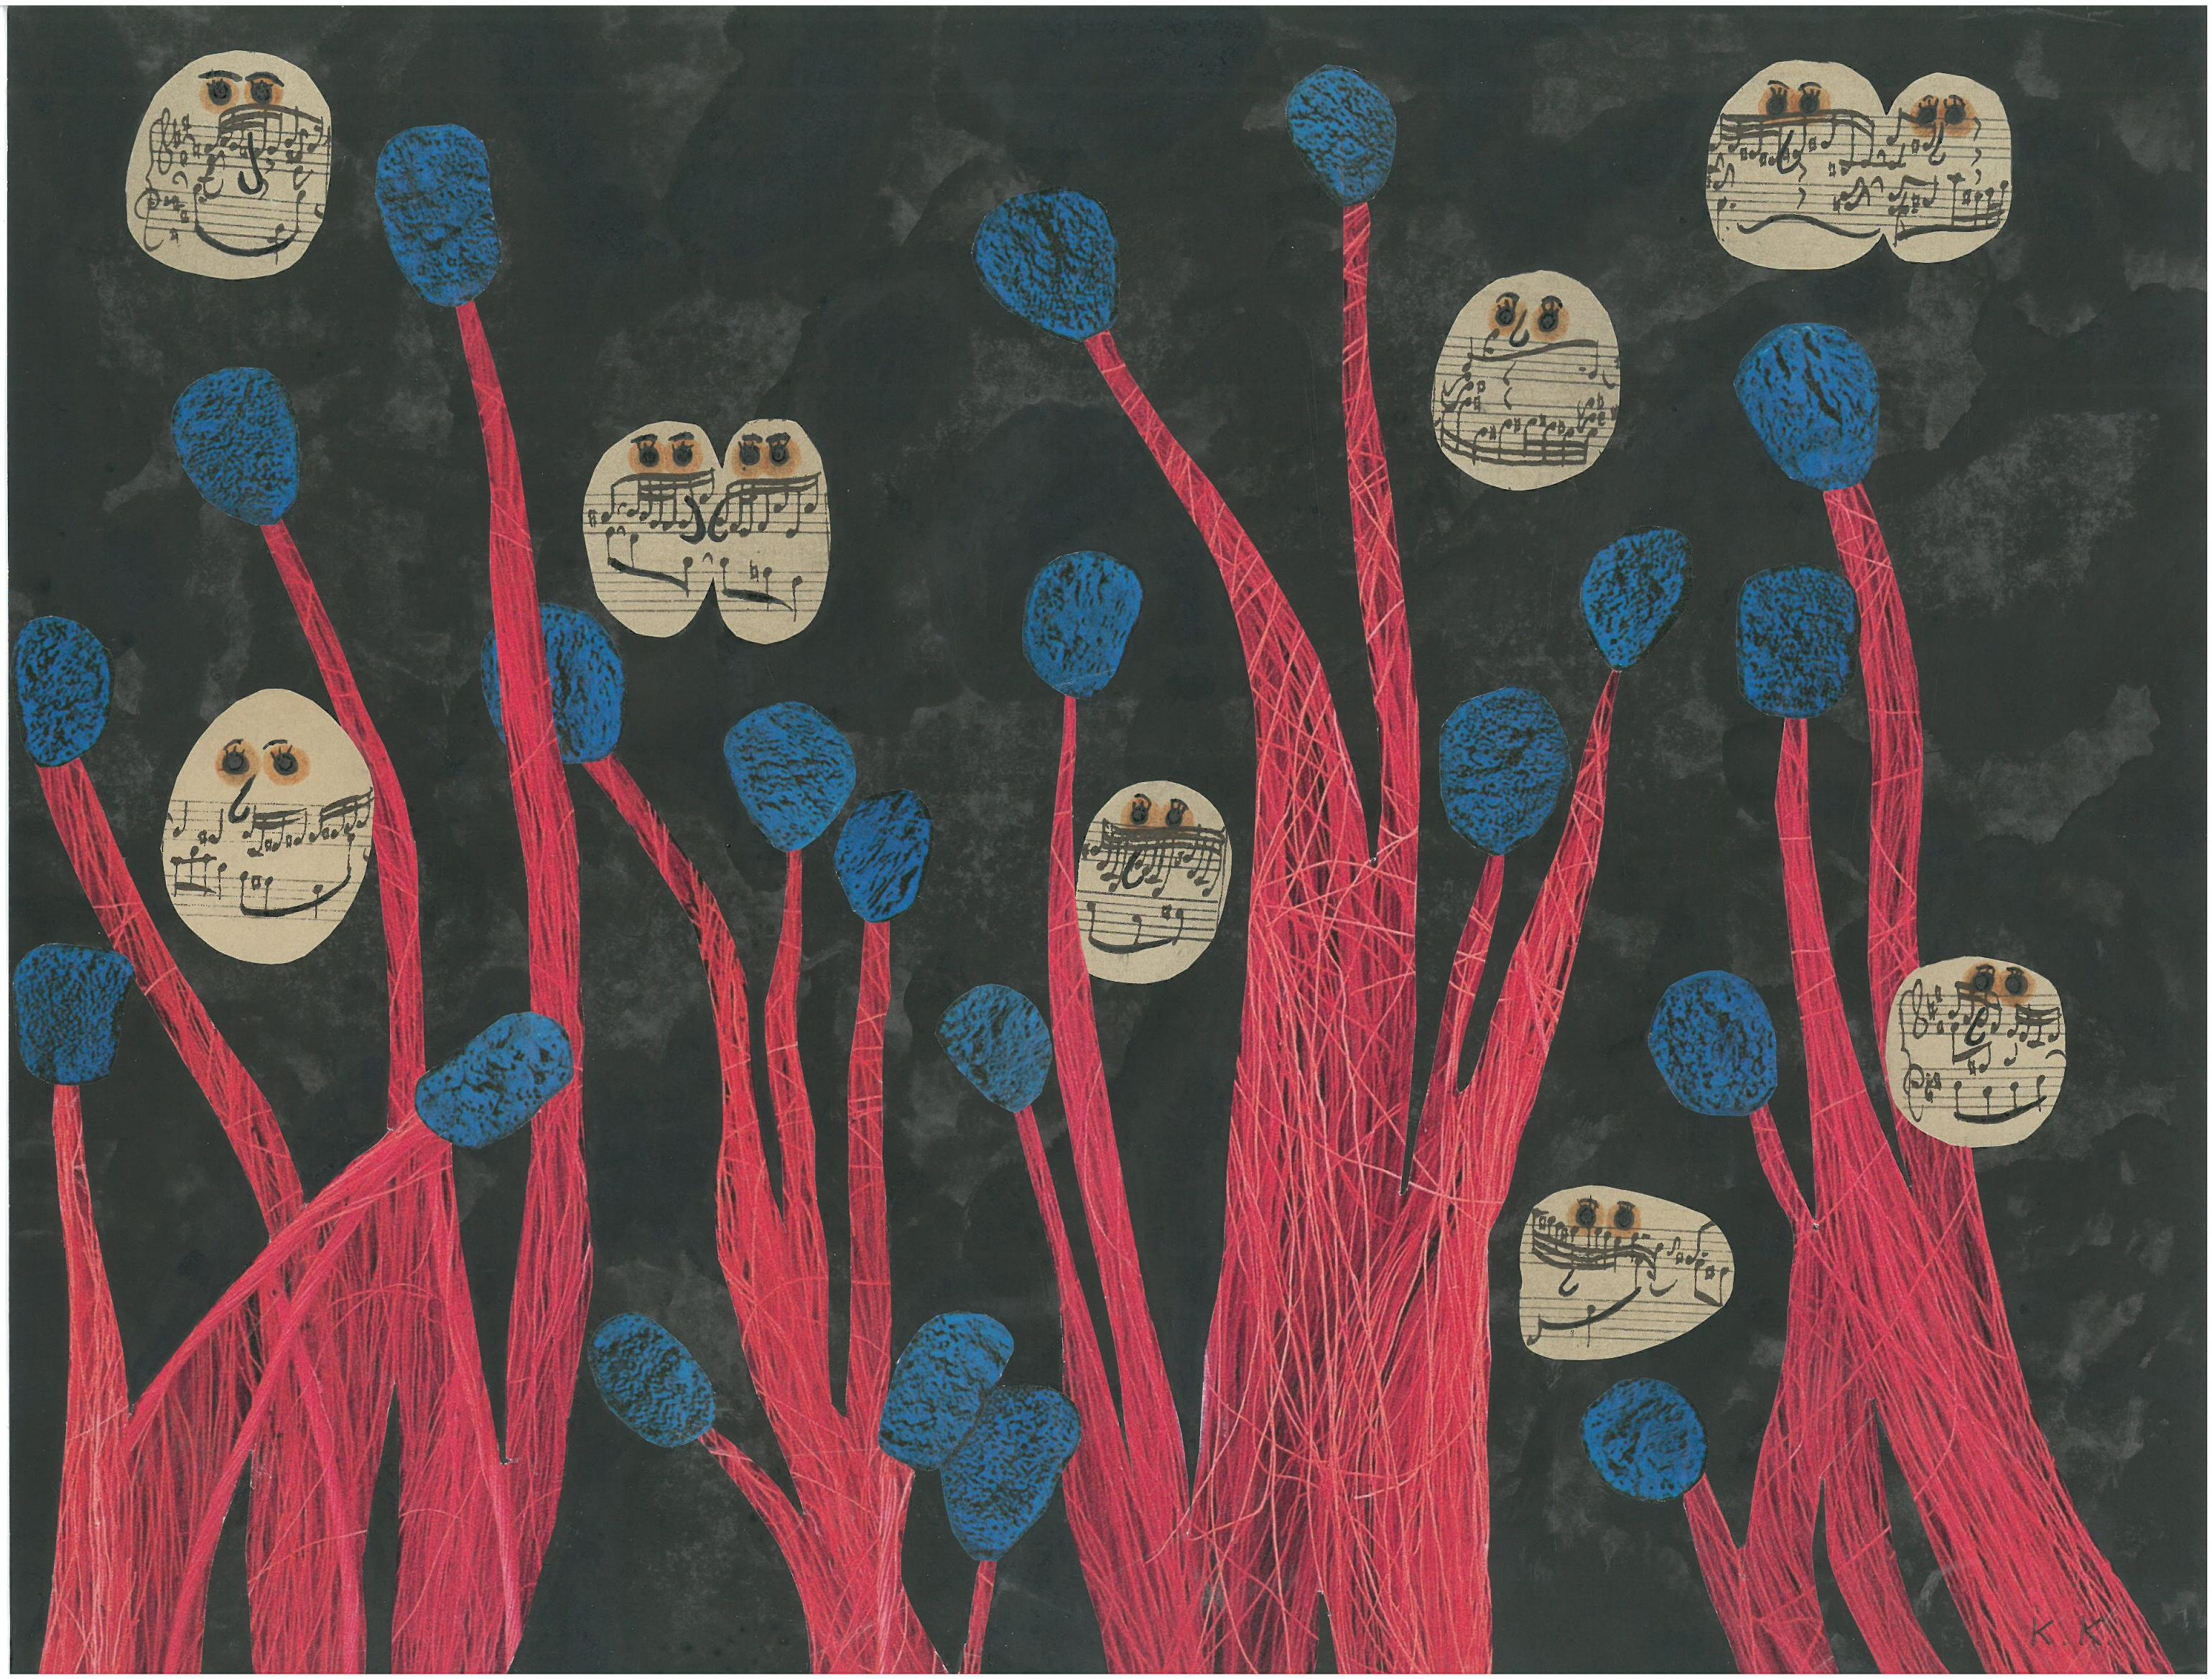 Music Beings And Nocturnal Plants, Outsider Collage, Who Is Indifferent Does Anyone Like It